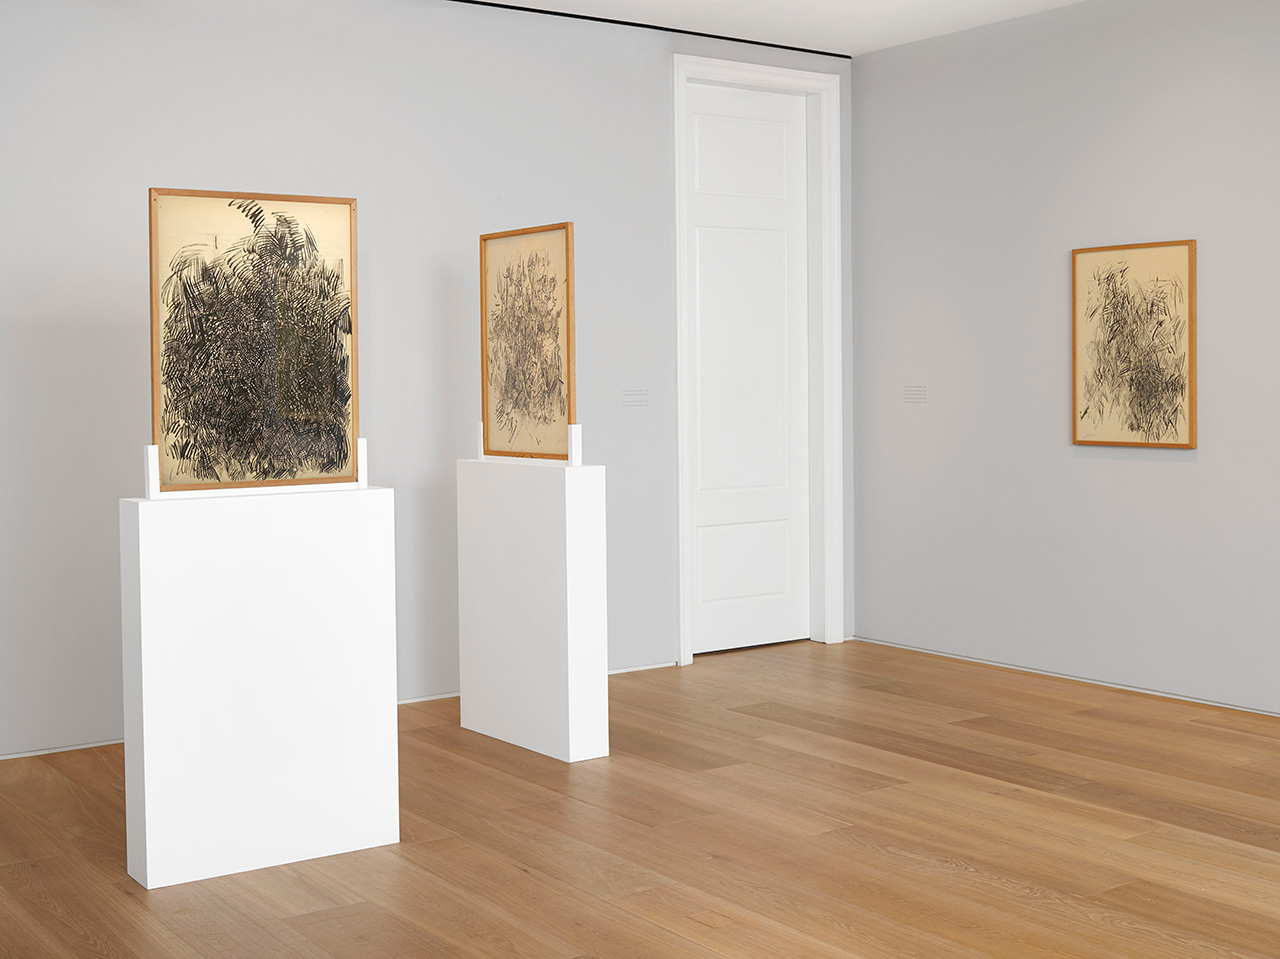 An installation view of some of Opalka's from 1959 and 1960, years before his lifelong project began. (photo courtesy Dominique Lévy Gallery)